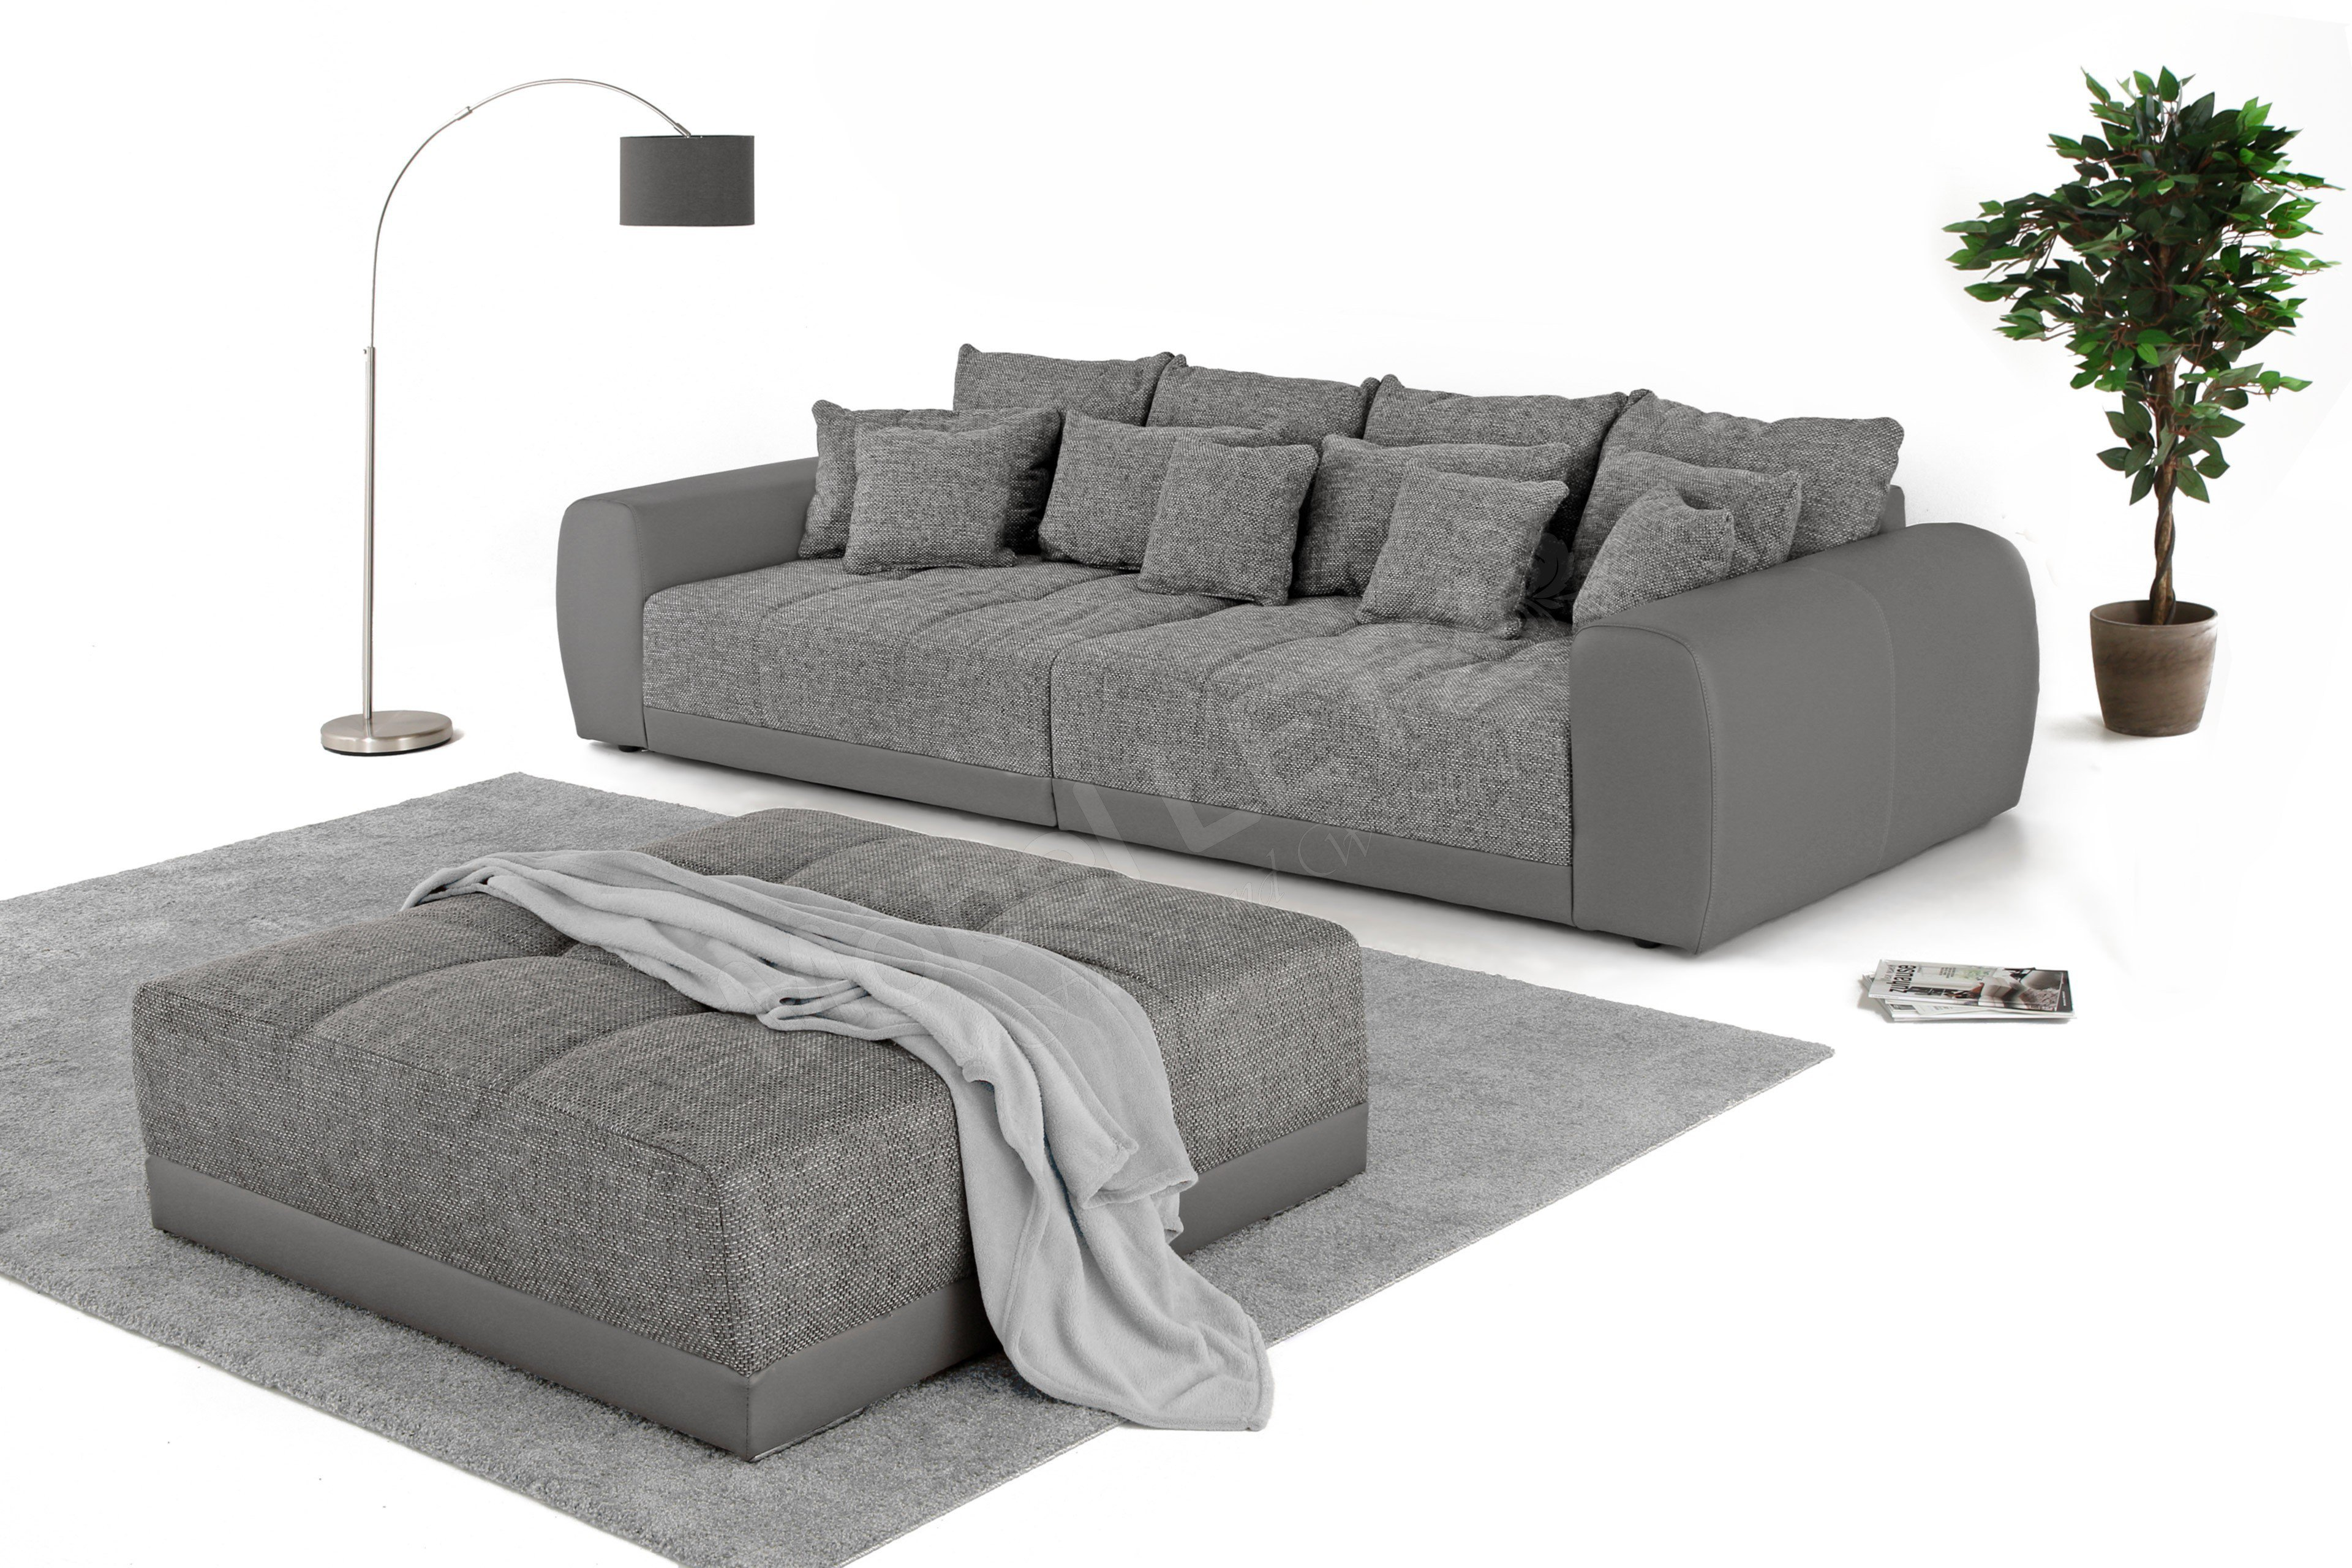 Kollektion Letz Big Sofa Natascha In Grau Mobel Letz Ihr Online Shop